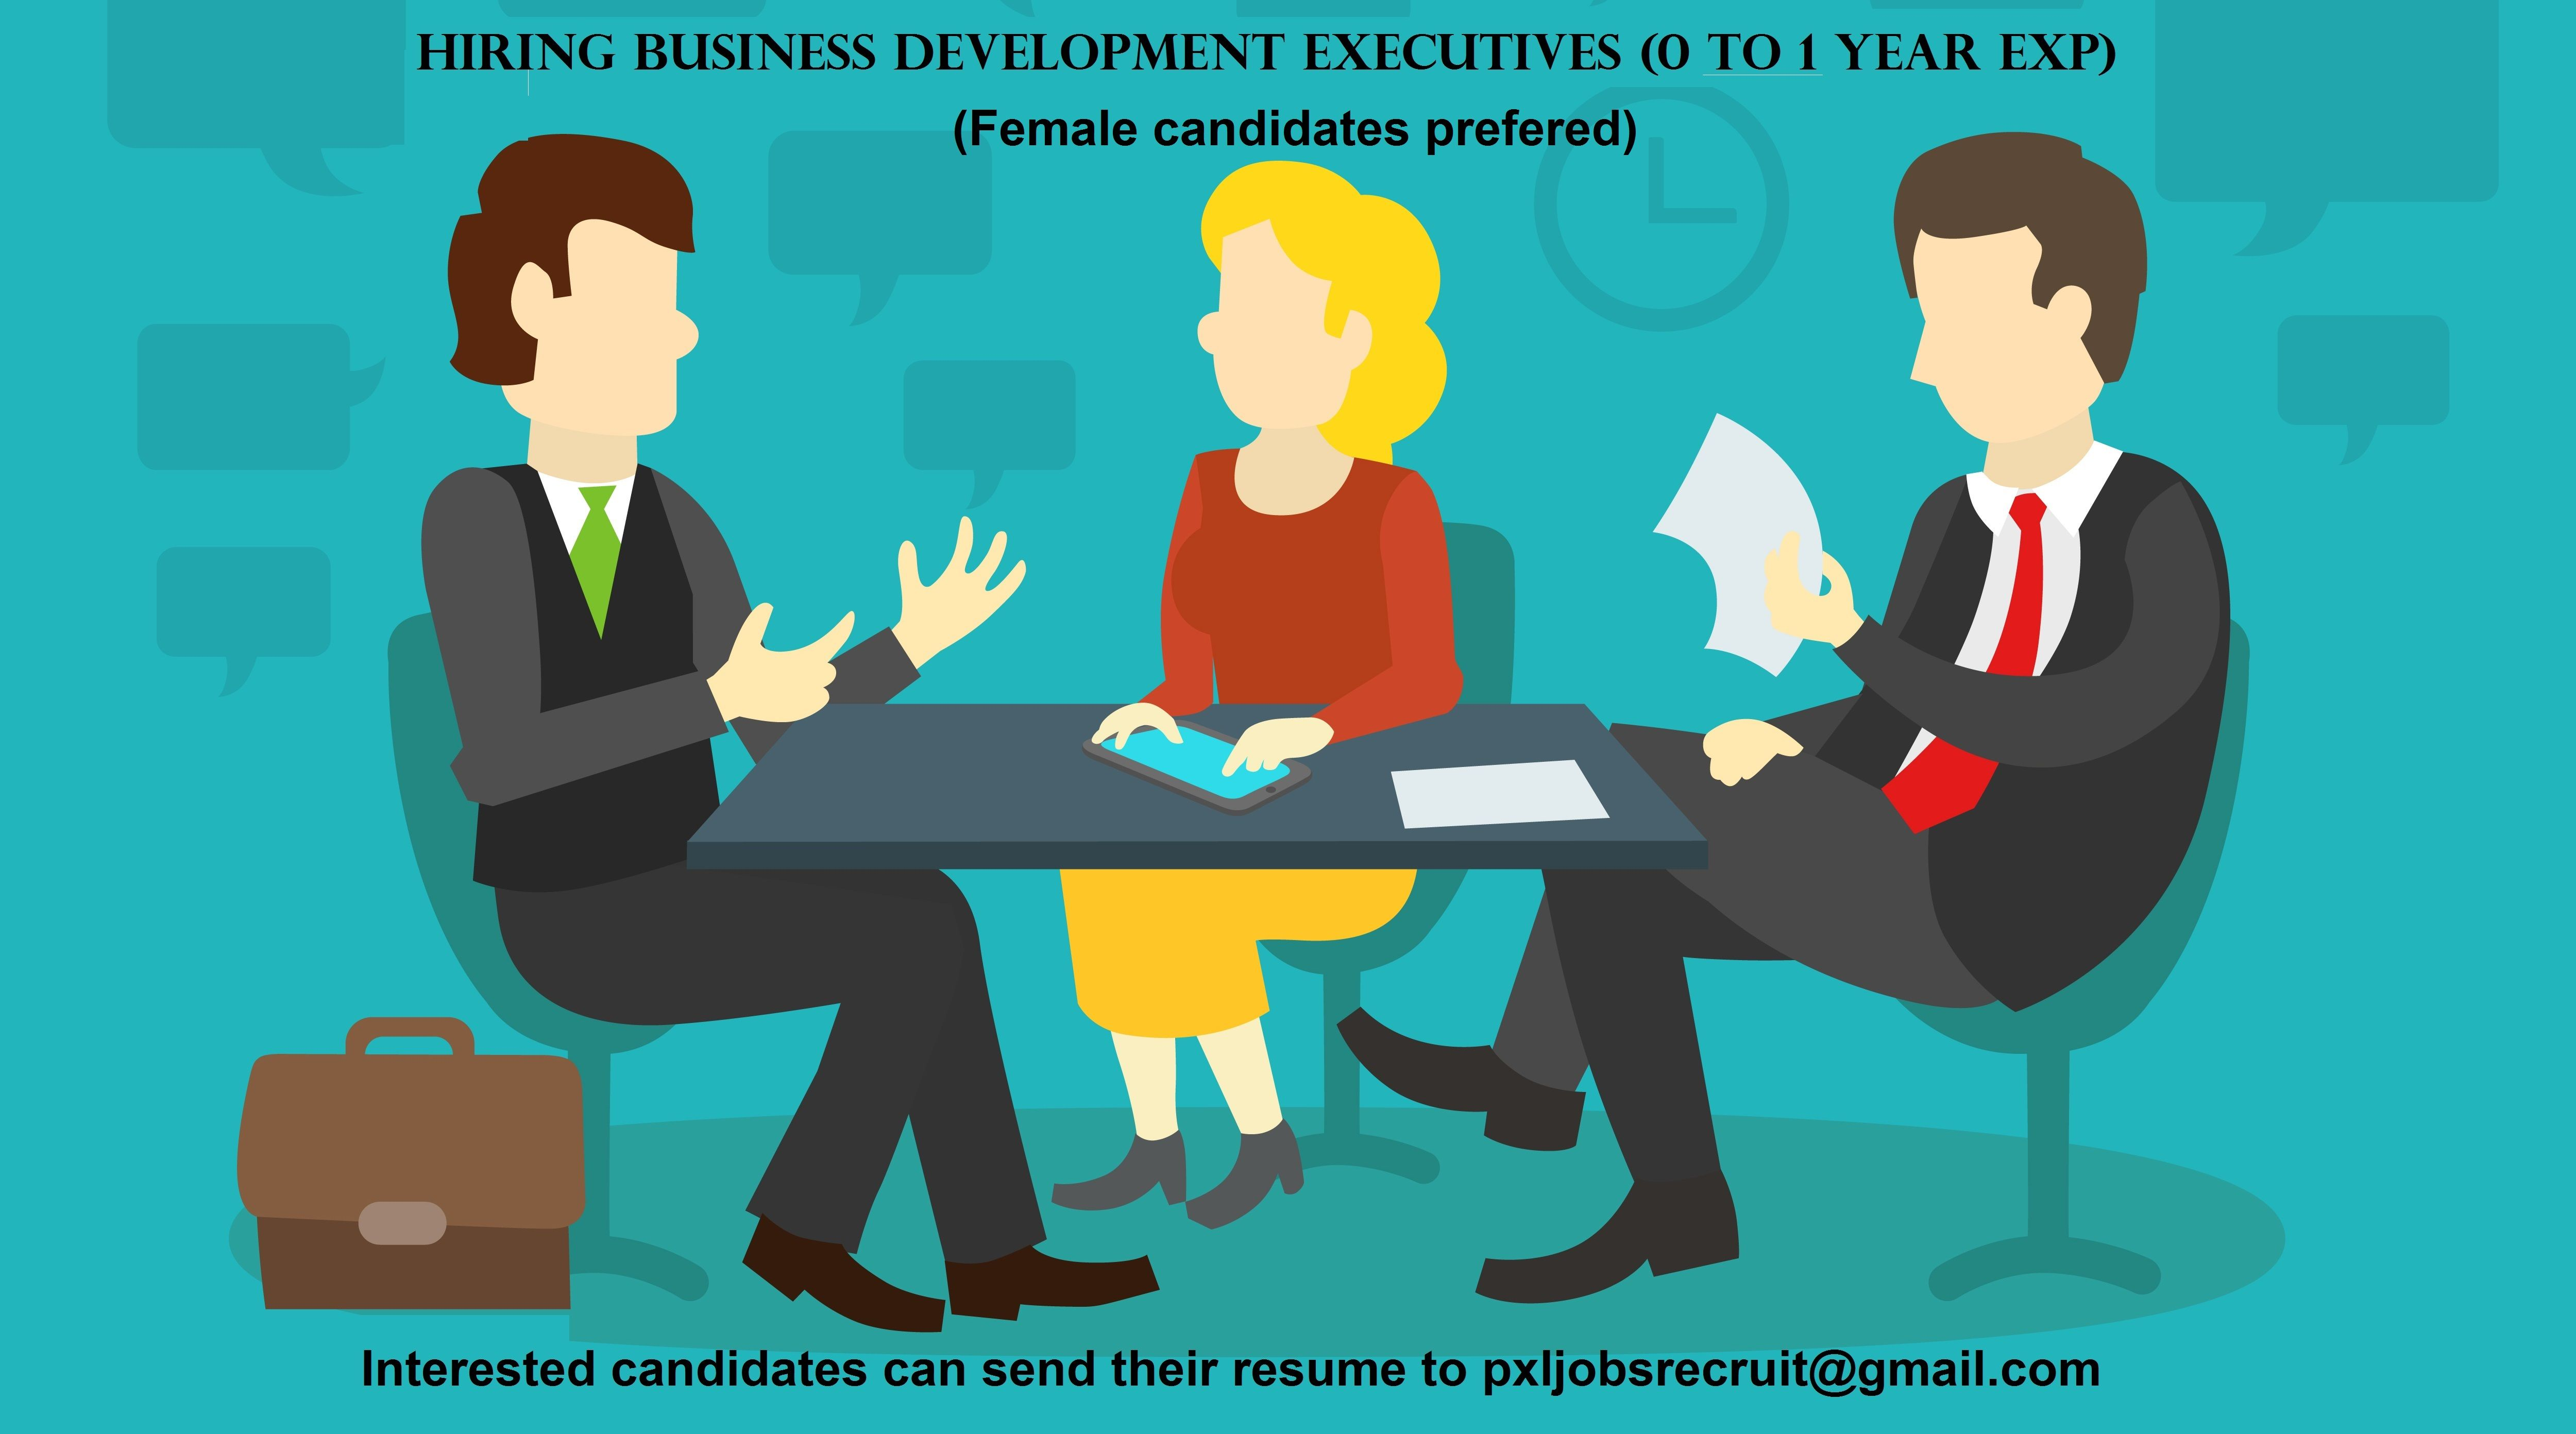 We are Hiring Business Development Executives with talent